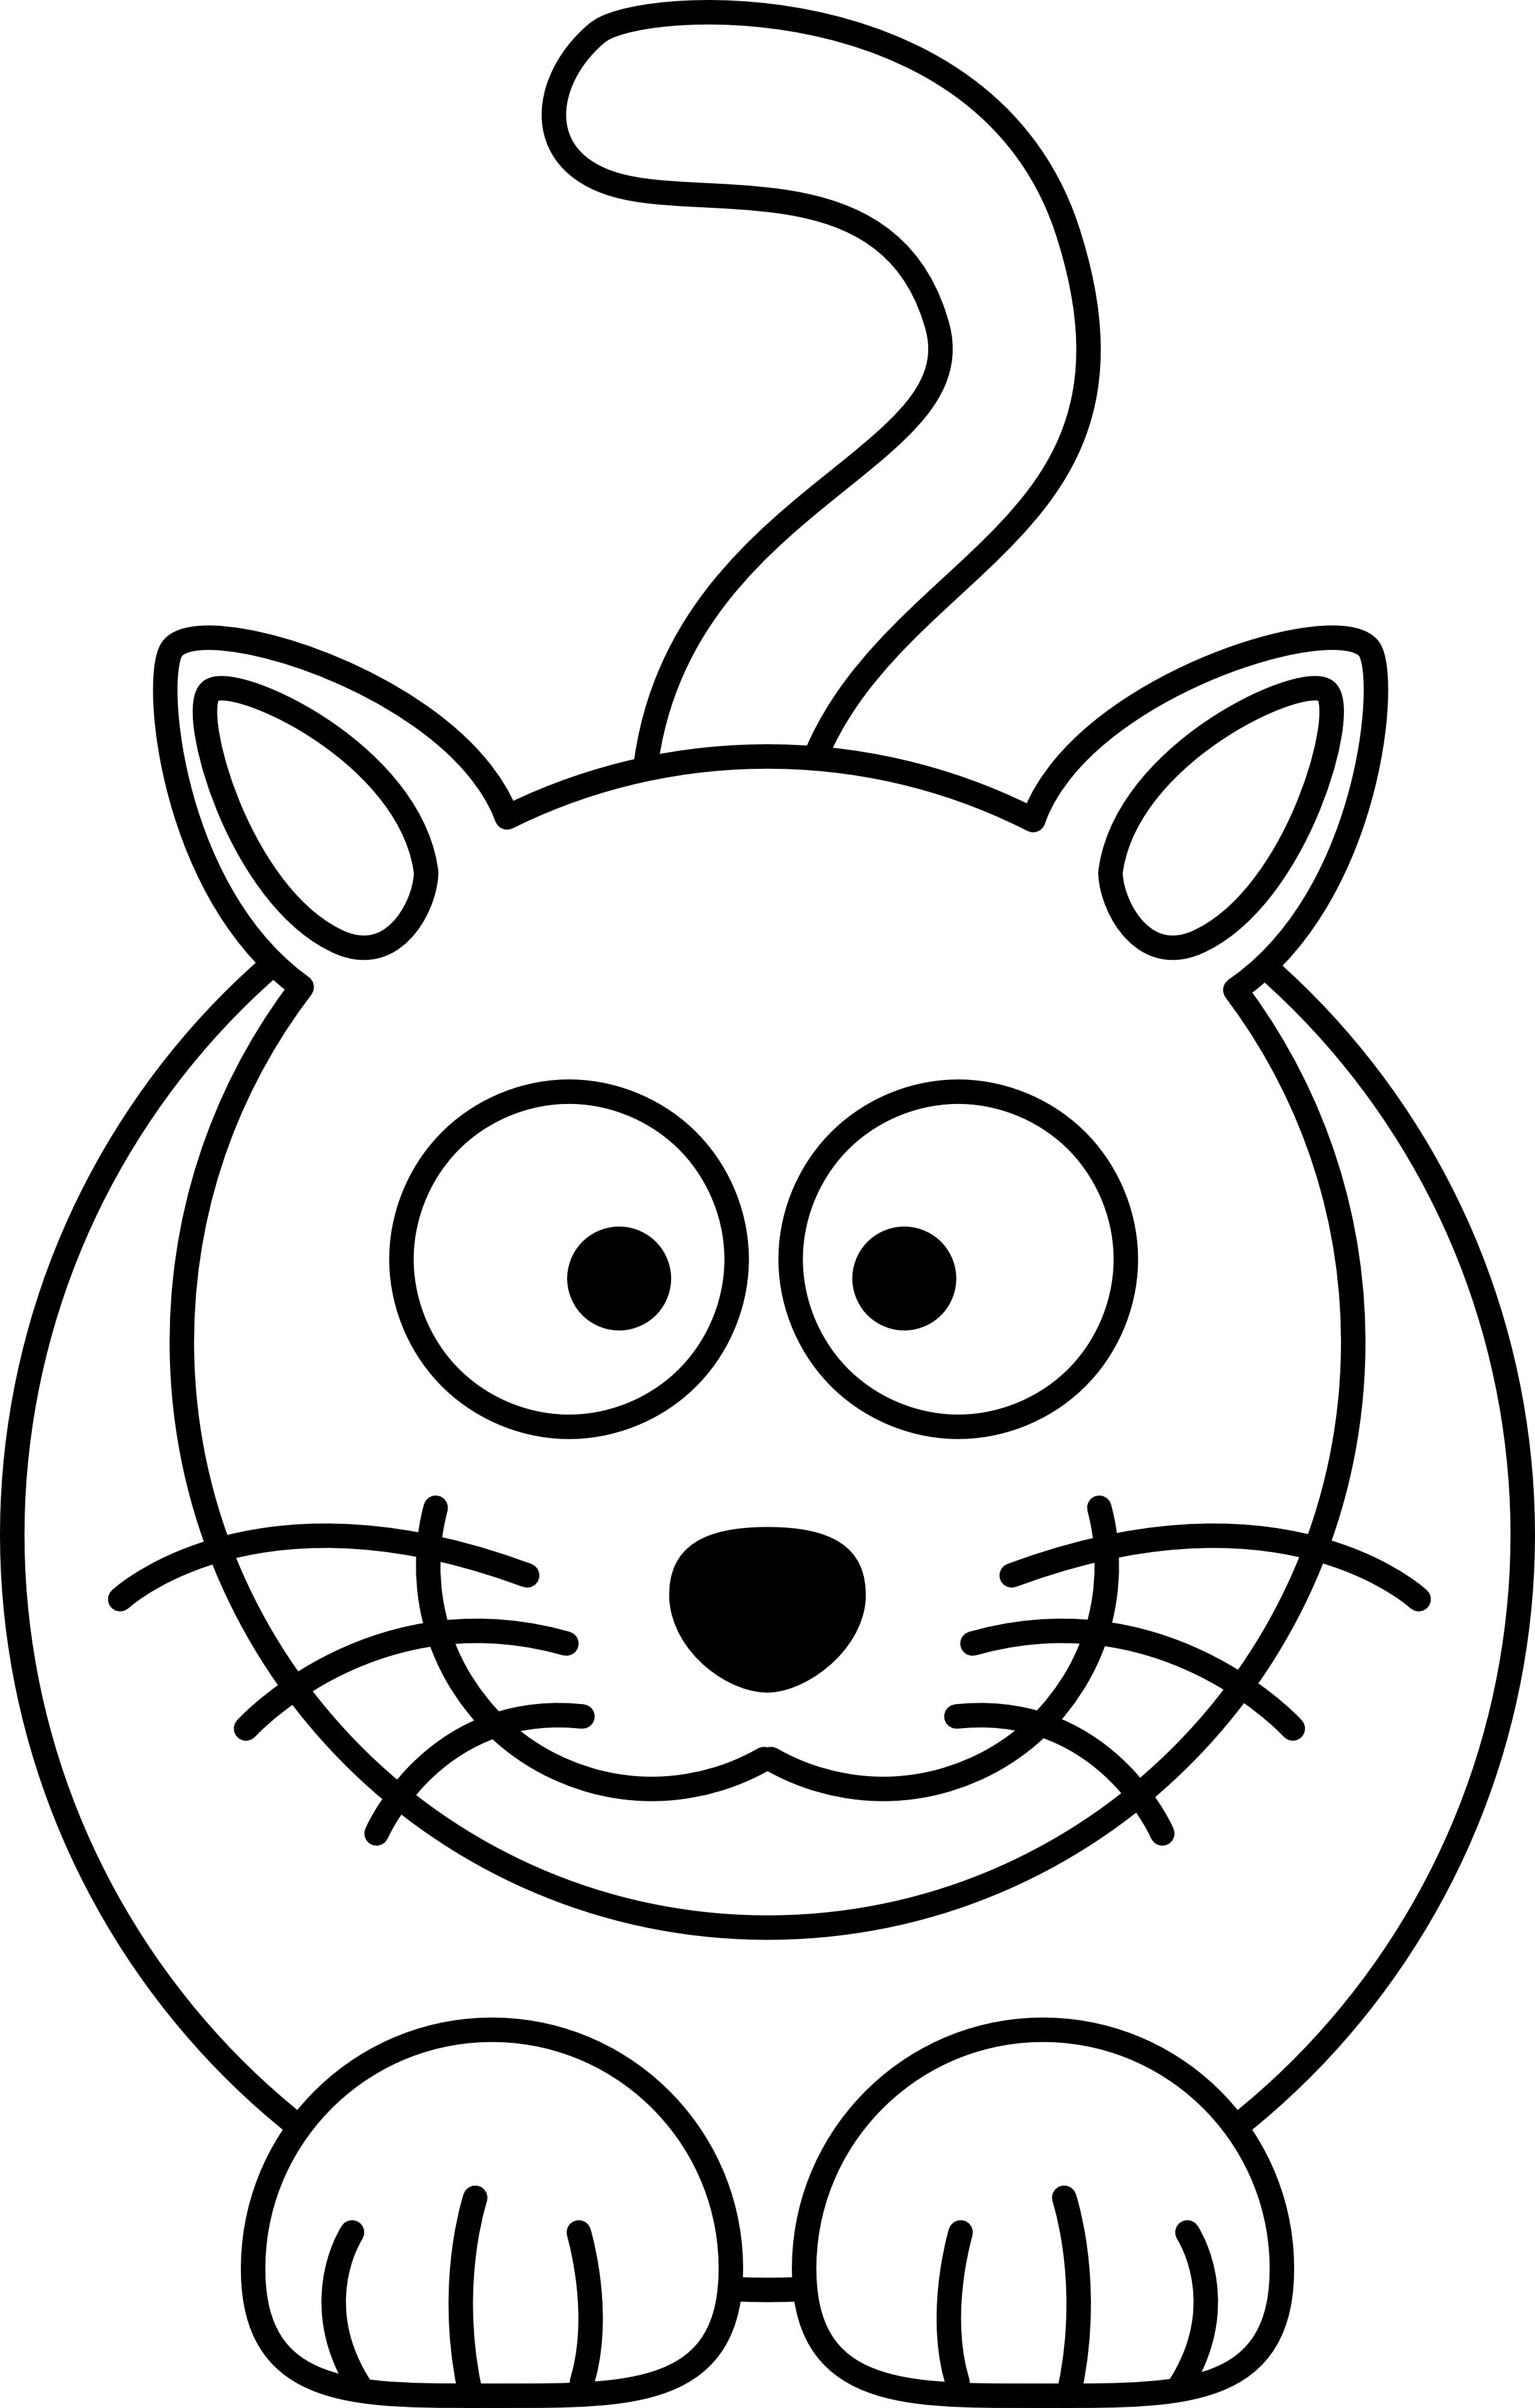 960x544 Kitten Coloring Page Free Printable And Download Animals Pages 2555x4009 Face Clipart Black White